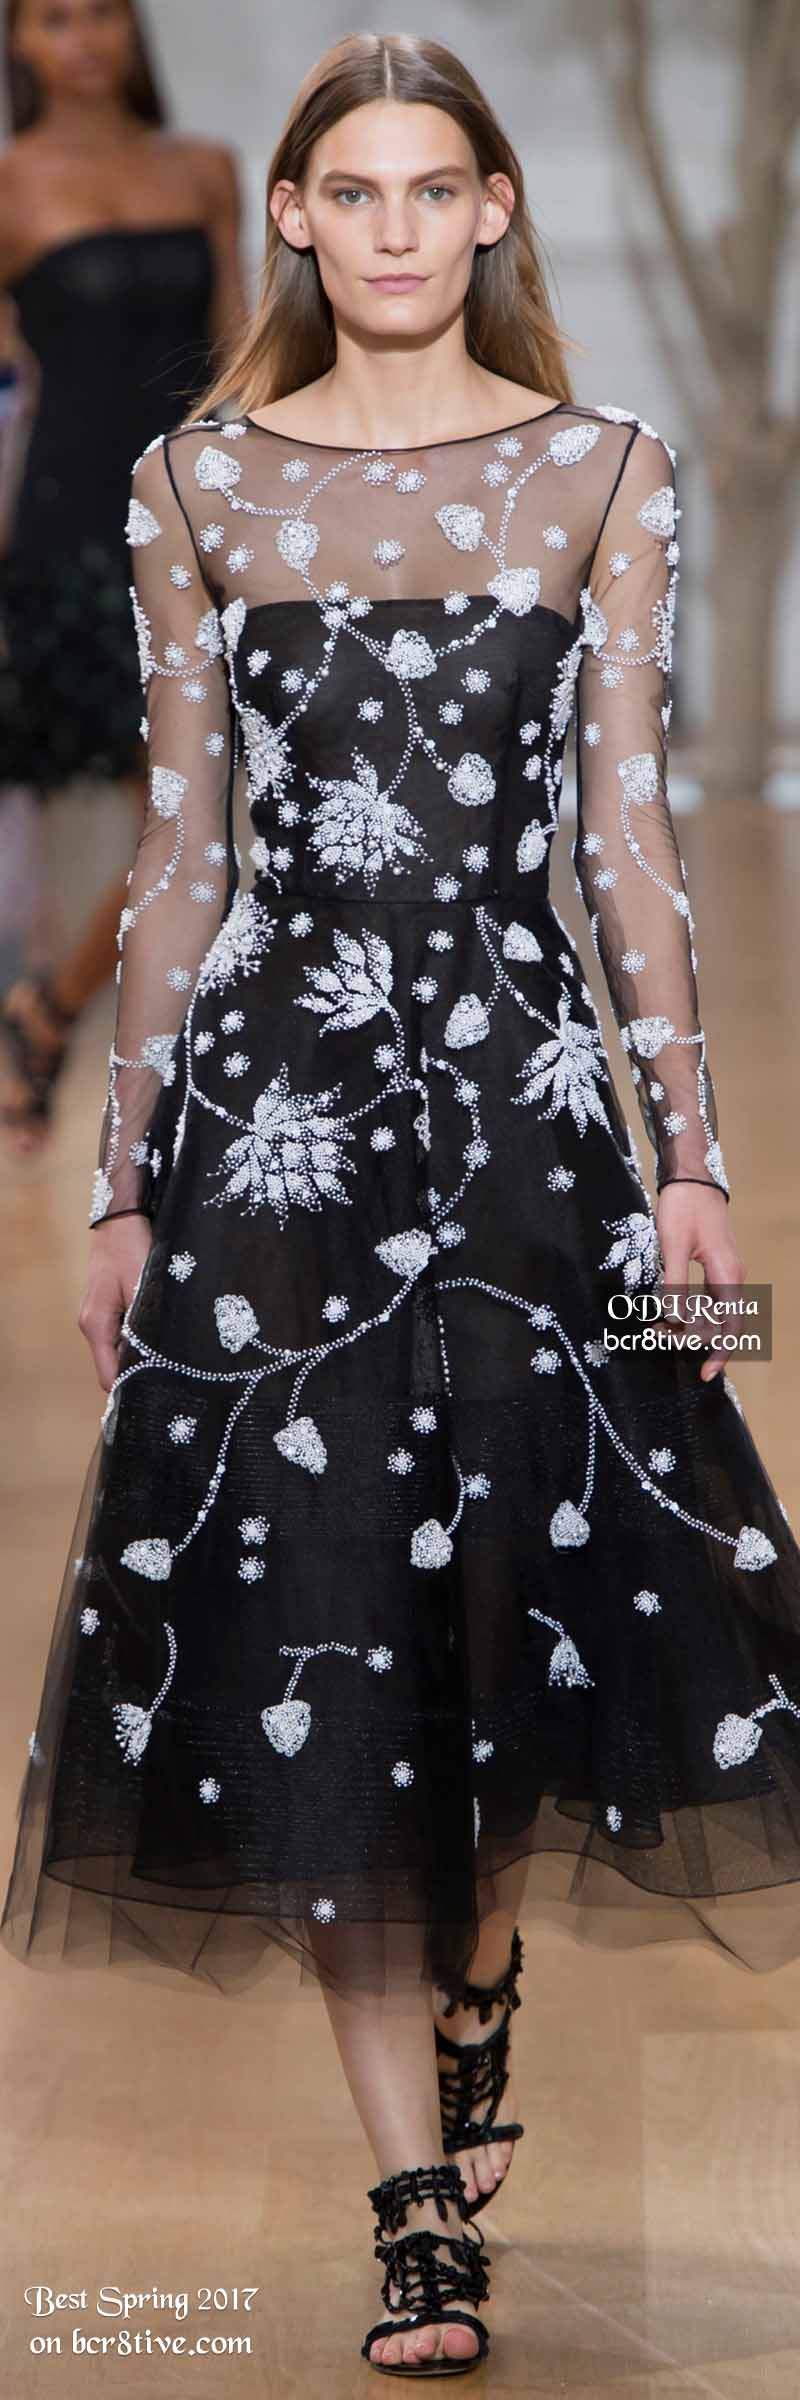 Oscar de la Renta - The Best Looks from New York Fashion Week Spring 2017